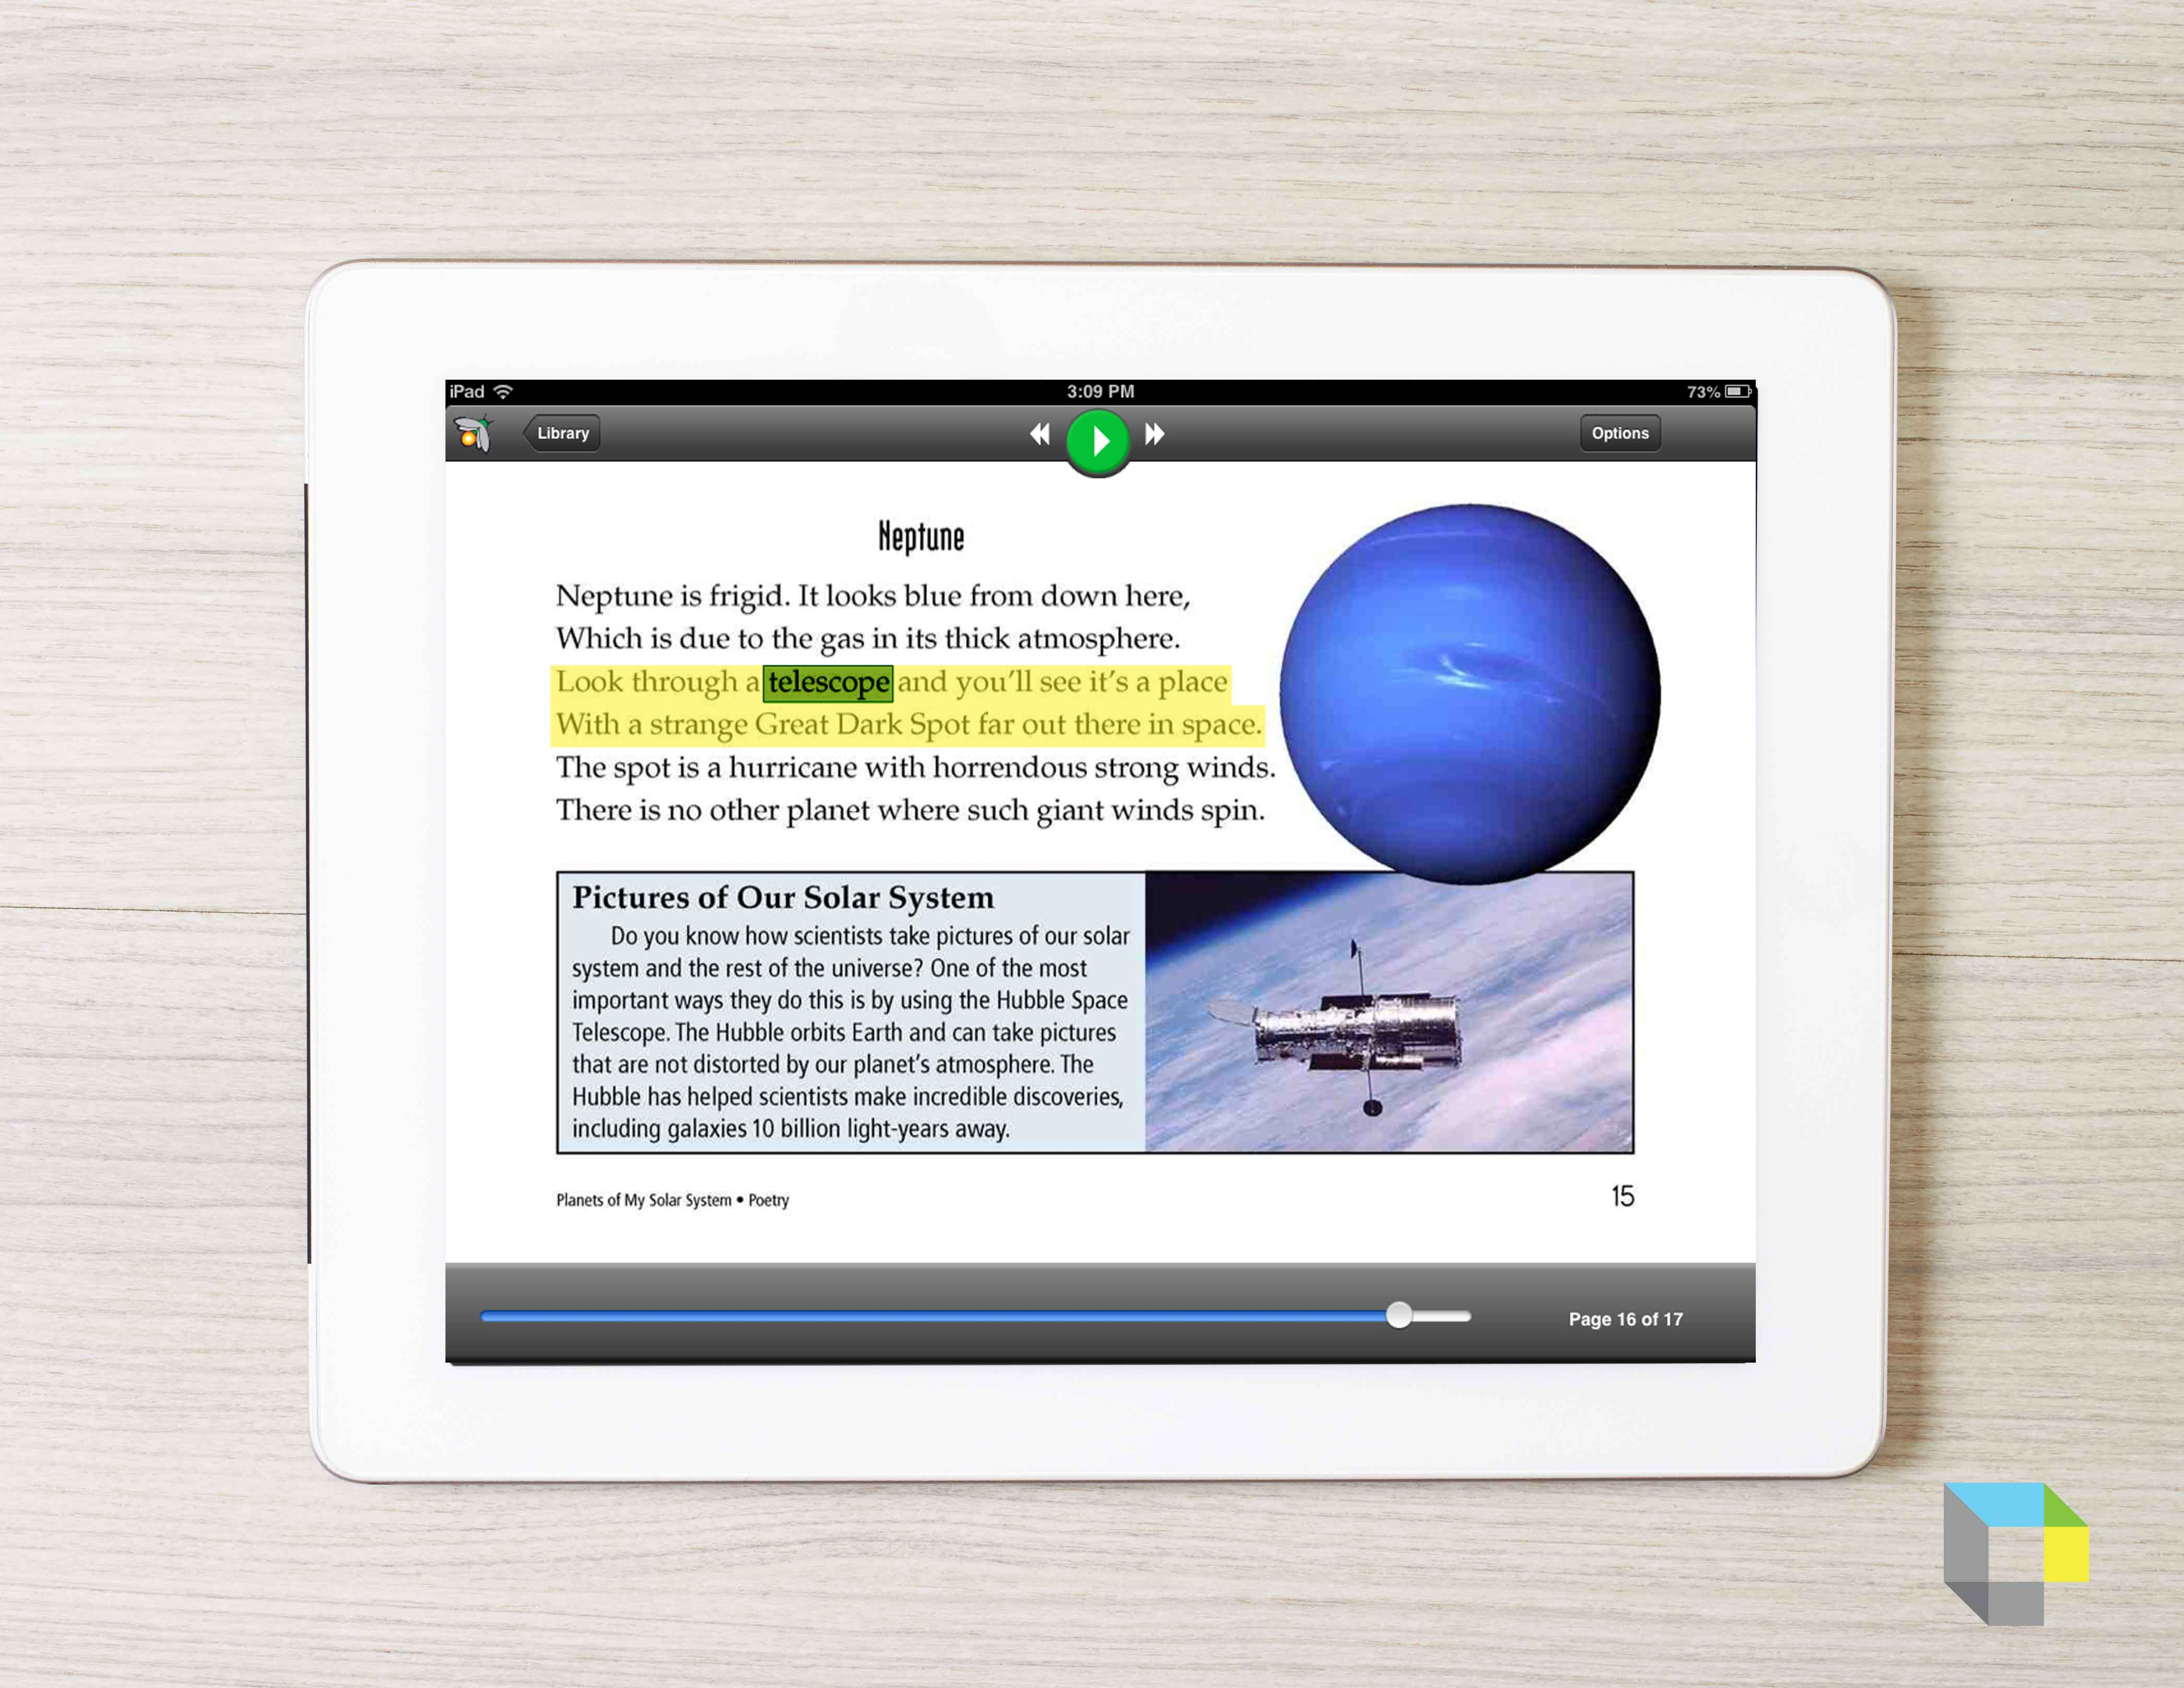 best voice to text word document apps for ipad